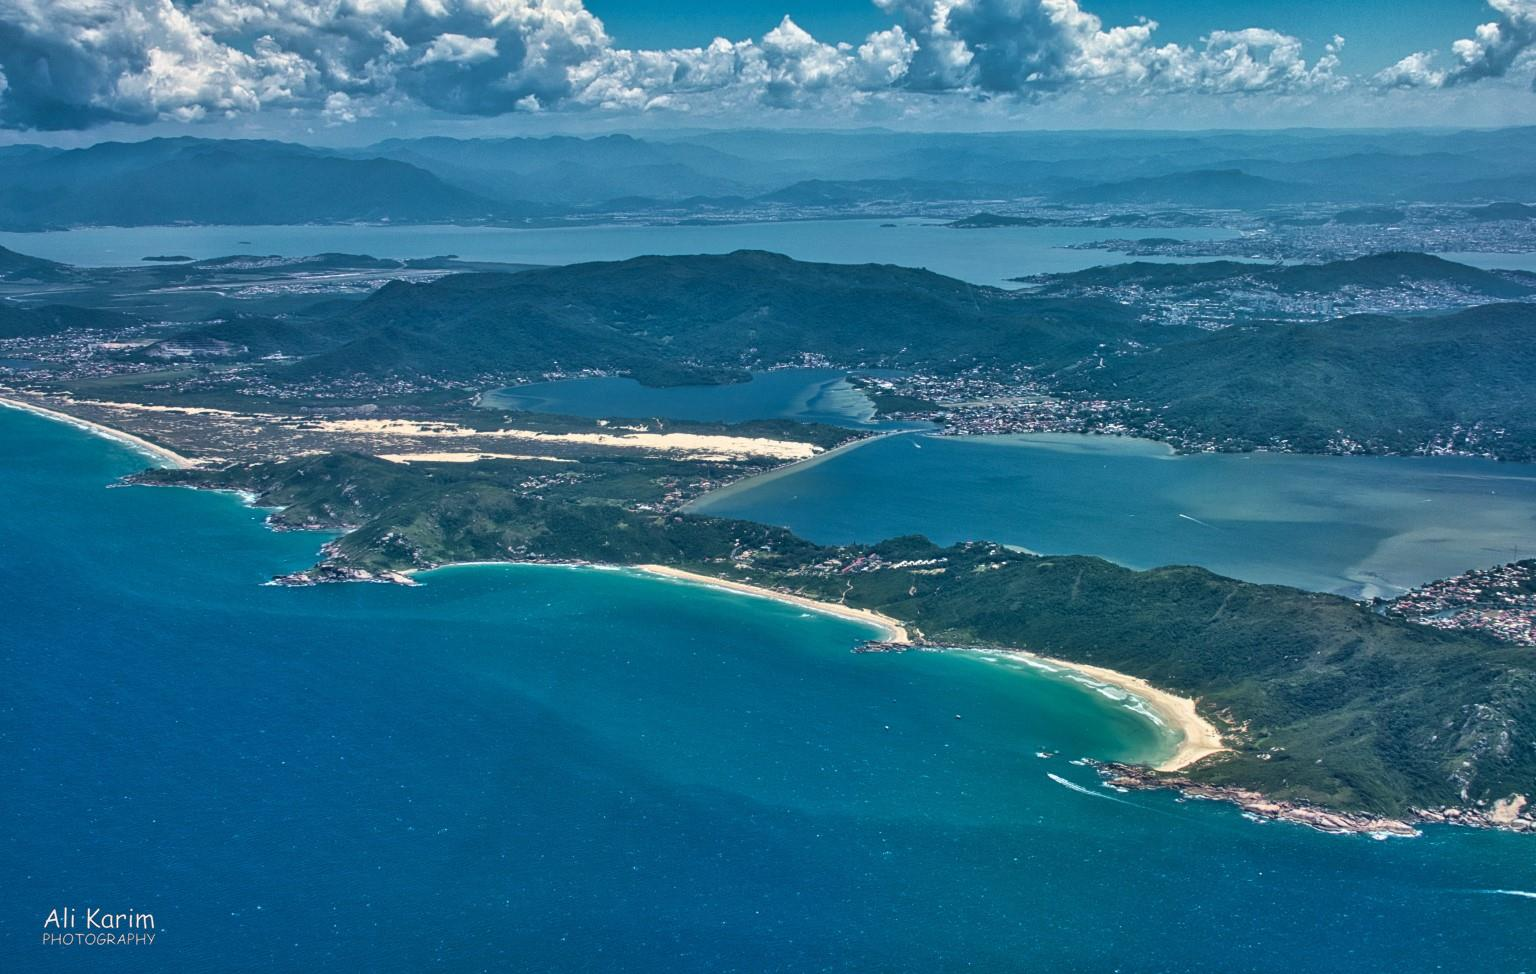 Florianópolis, Brazil Floripa on Santa Caterina island; note the beaches and the interior salt water lagoon